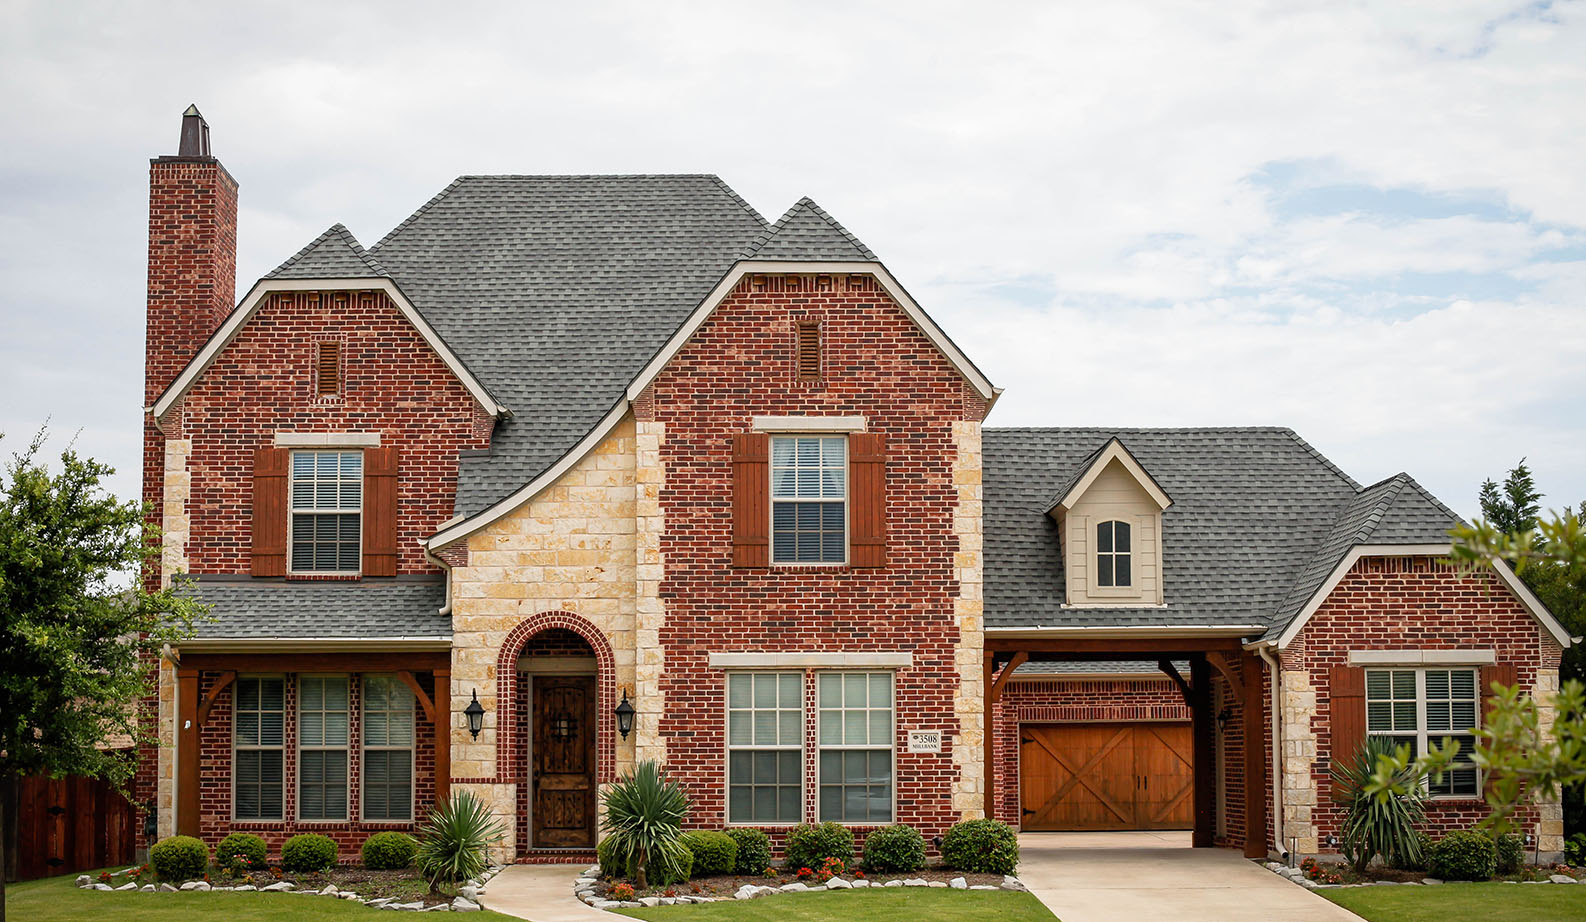 frisco-roofing-contractor-frame-restoration-frisco-roof-replacement-slate